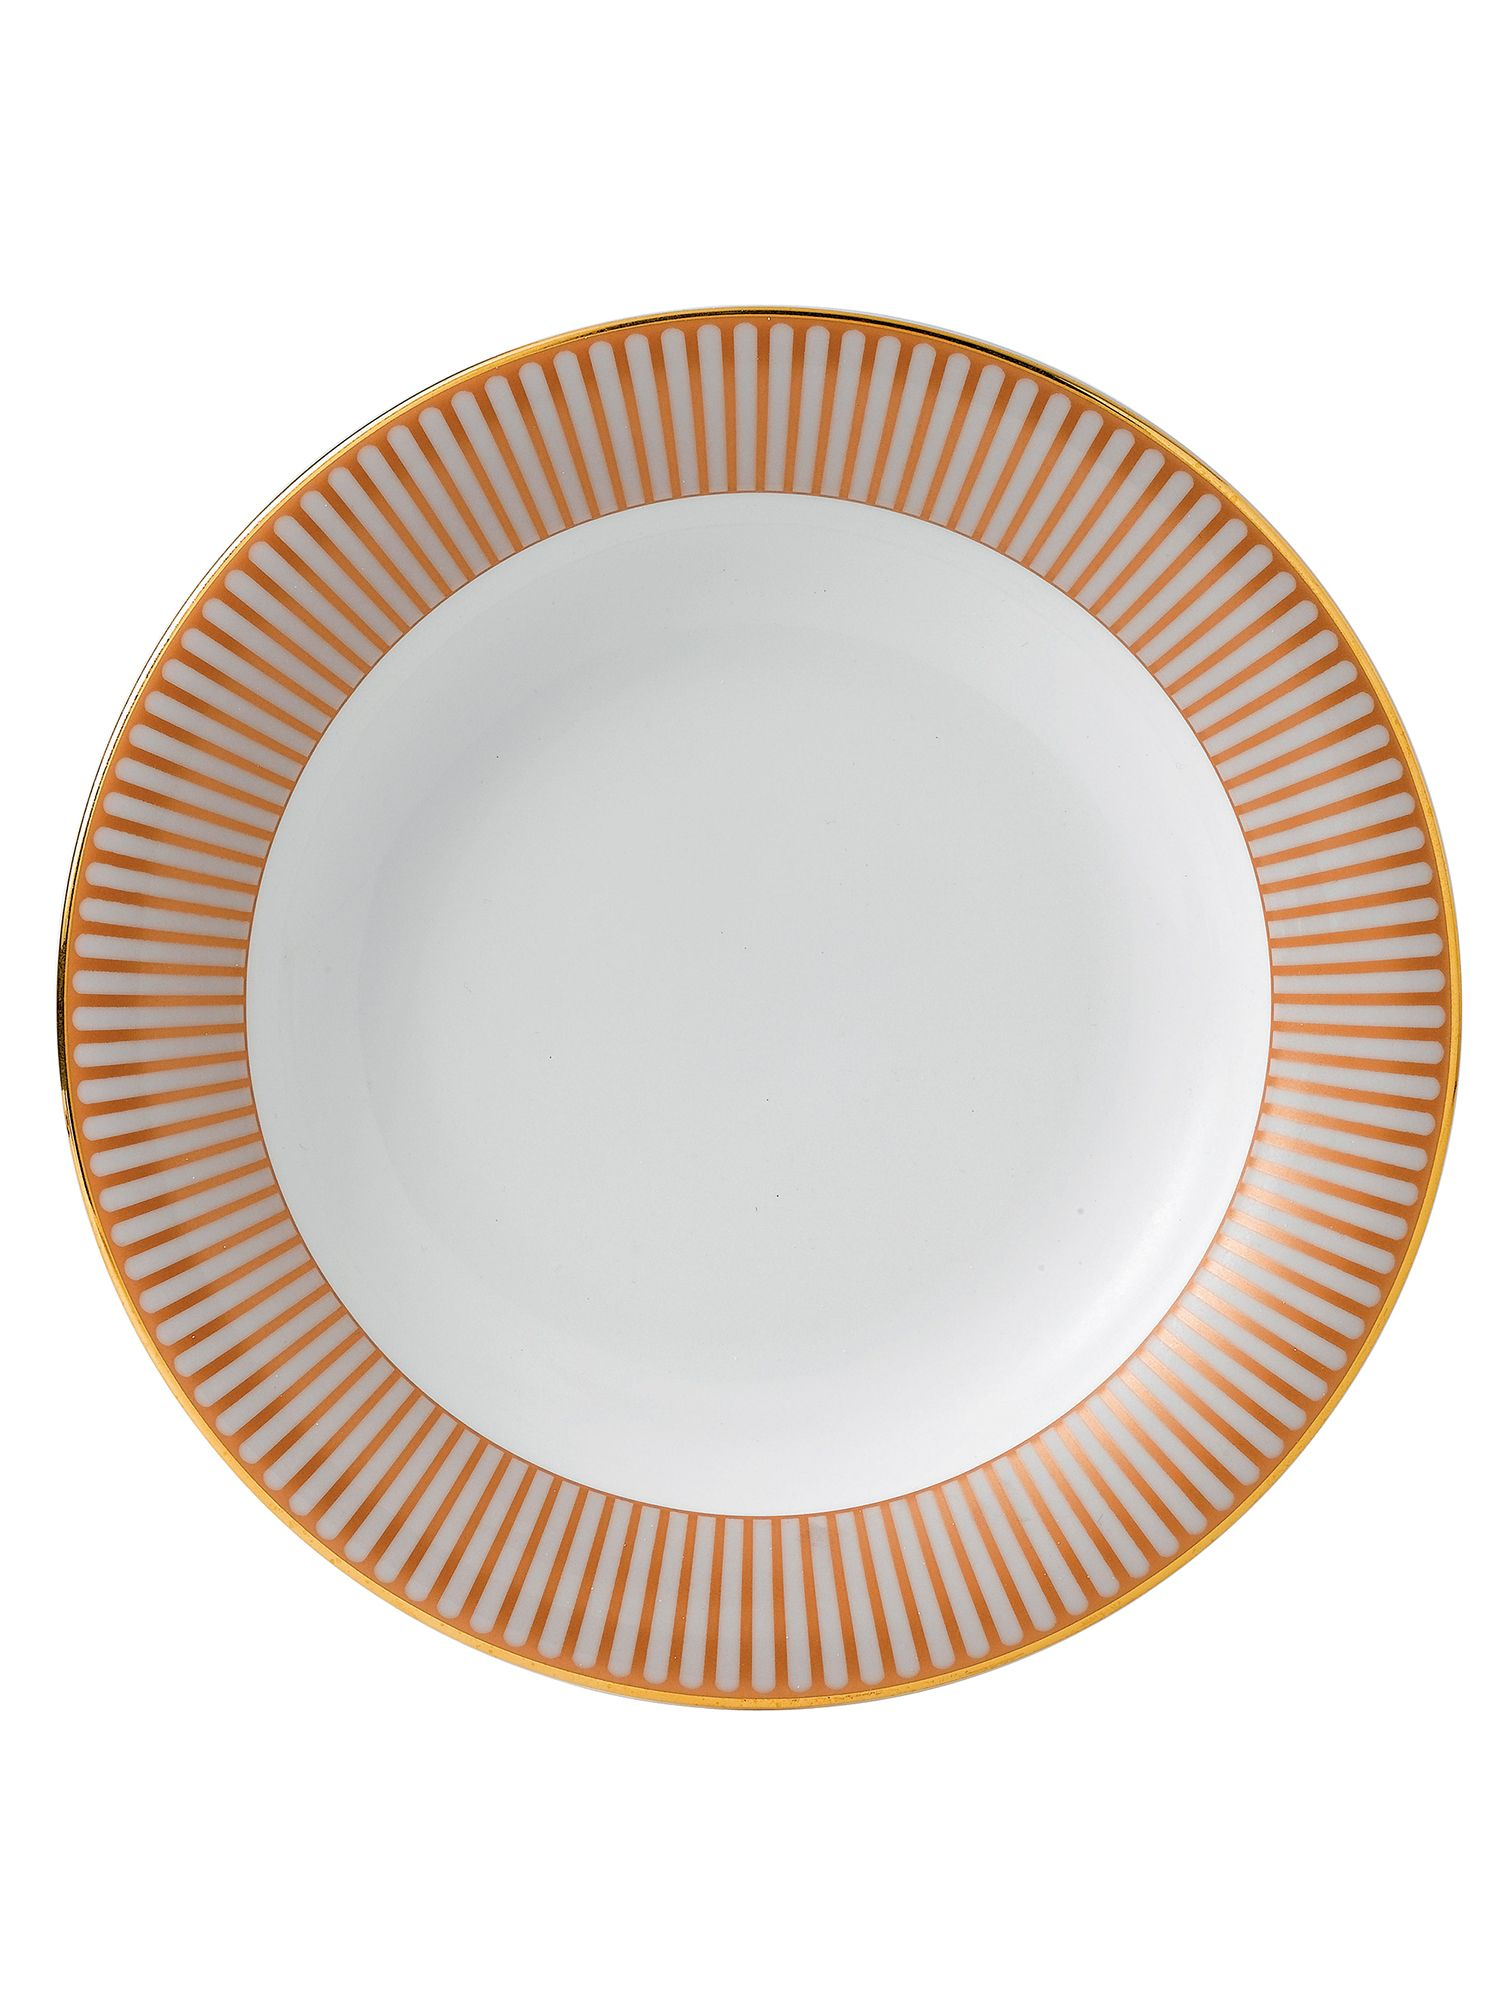 Palladian fine china soup plate 23cm